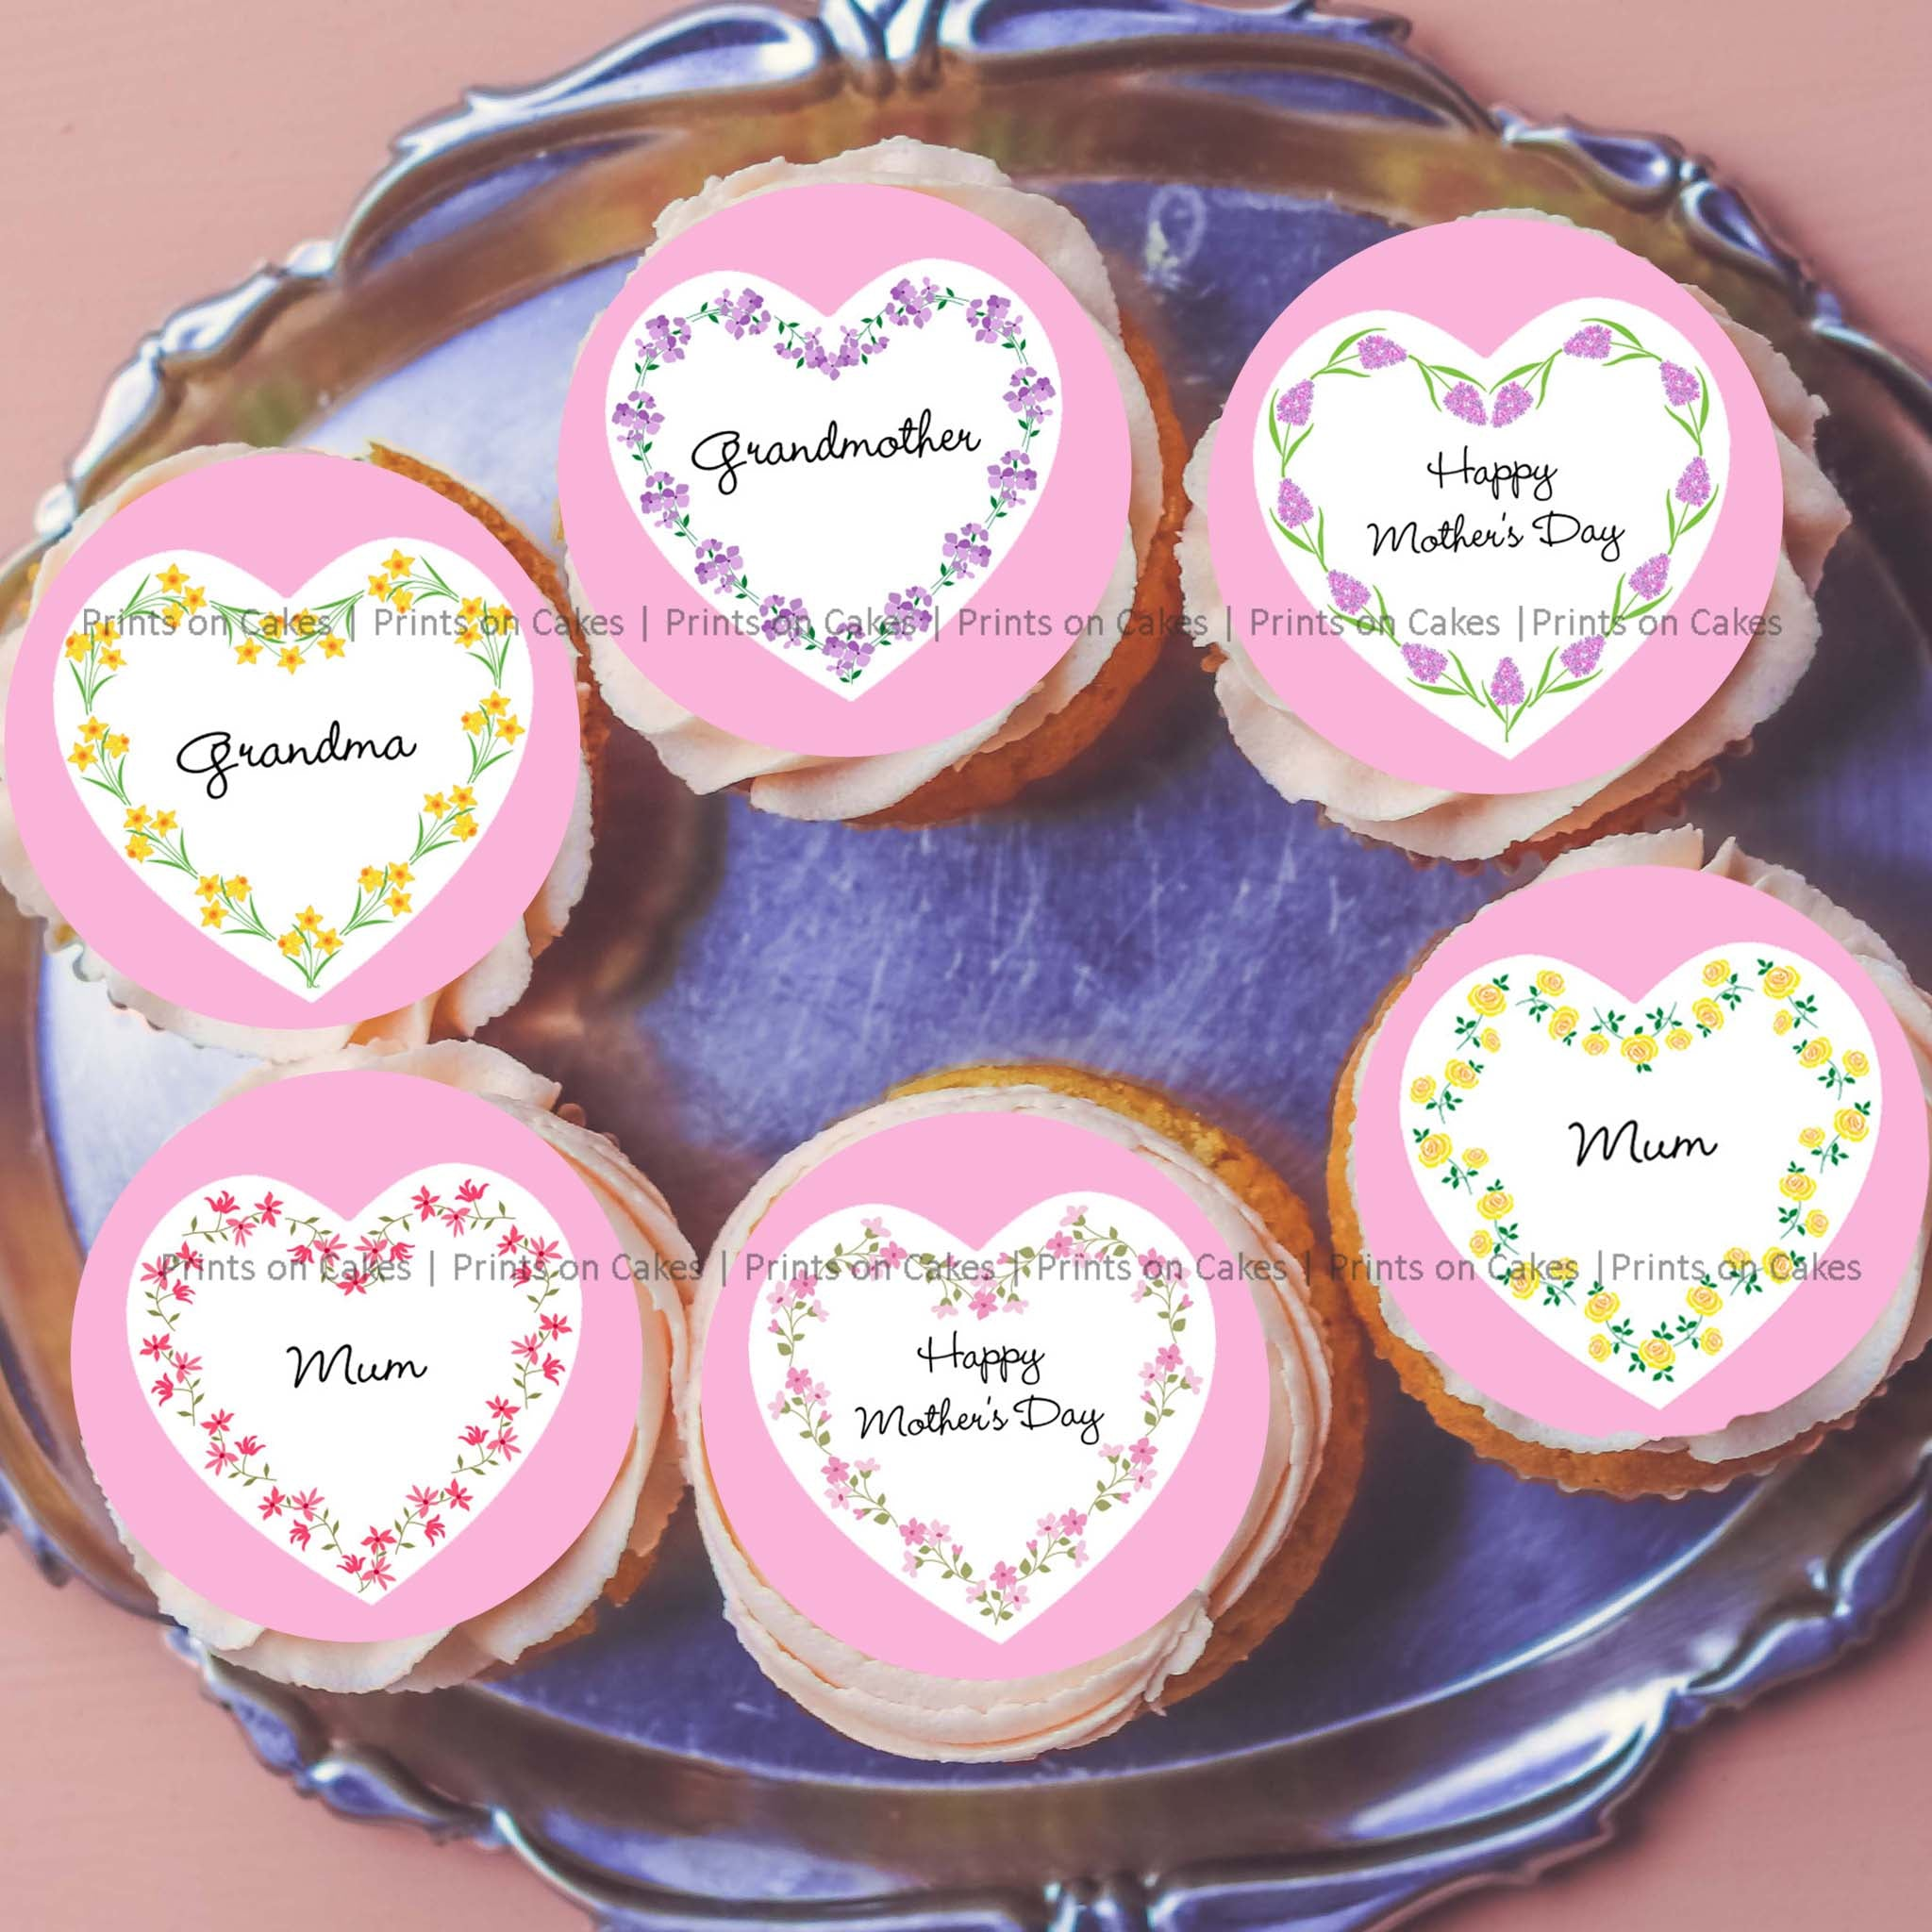 "Every Mum or Grandmother would be happy to receive sweet treats decorated with these adorable icing images with heart-shaped floral frames.   15 pre-cut circles with a diameter of 5 cm (2"") each.   Perfect for Cupcakes, Cookies and Biscuits."